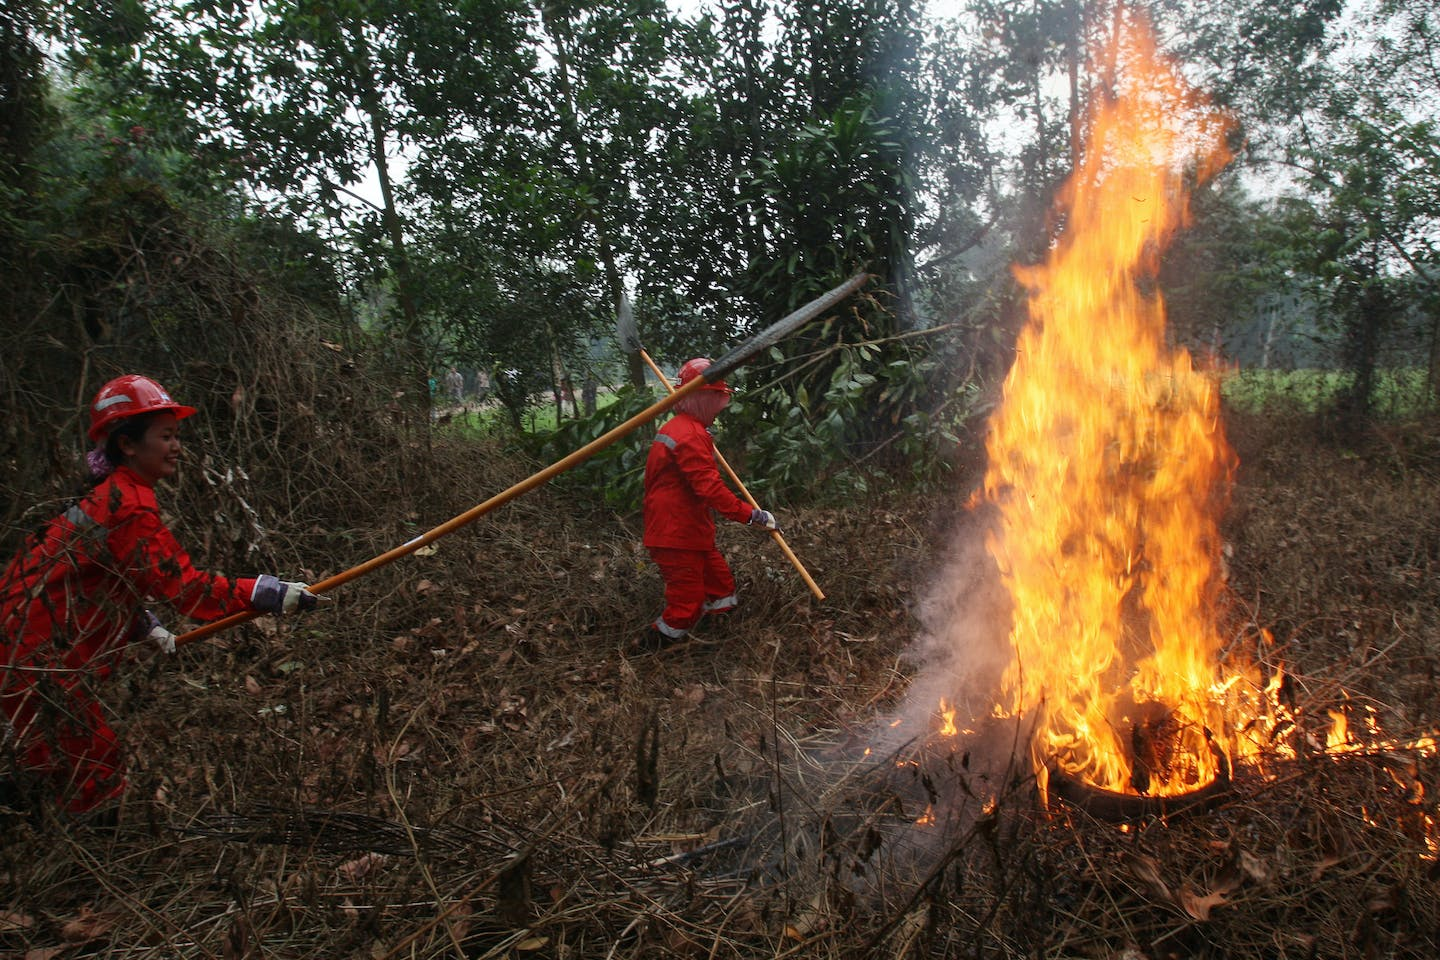 Stick firefighting in Indonesia